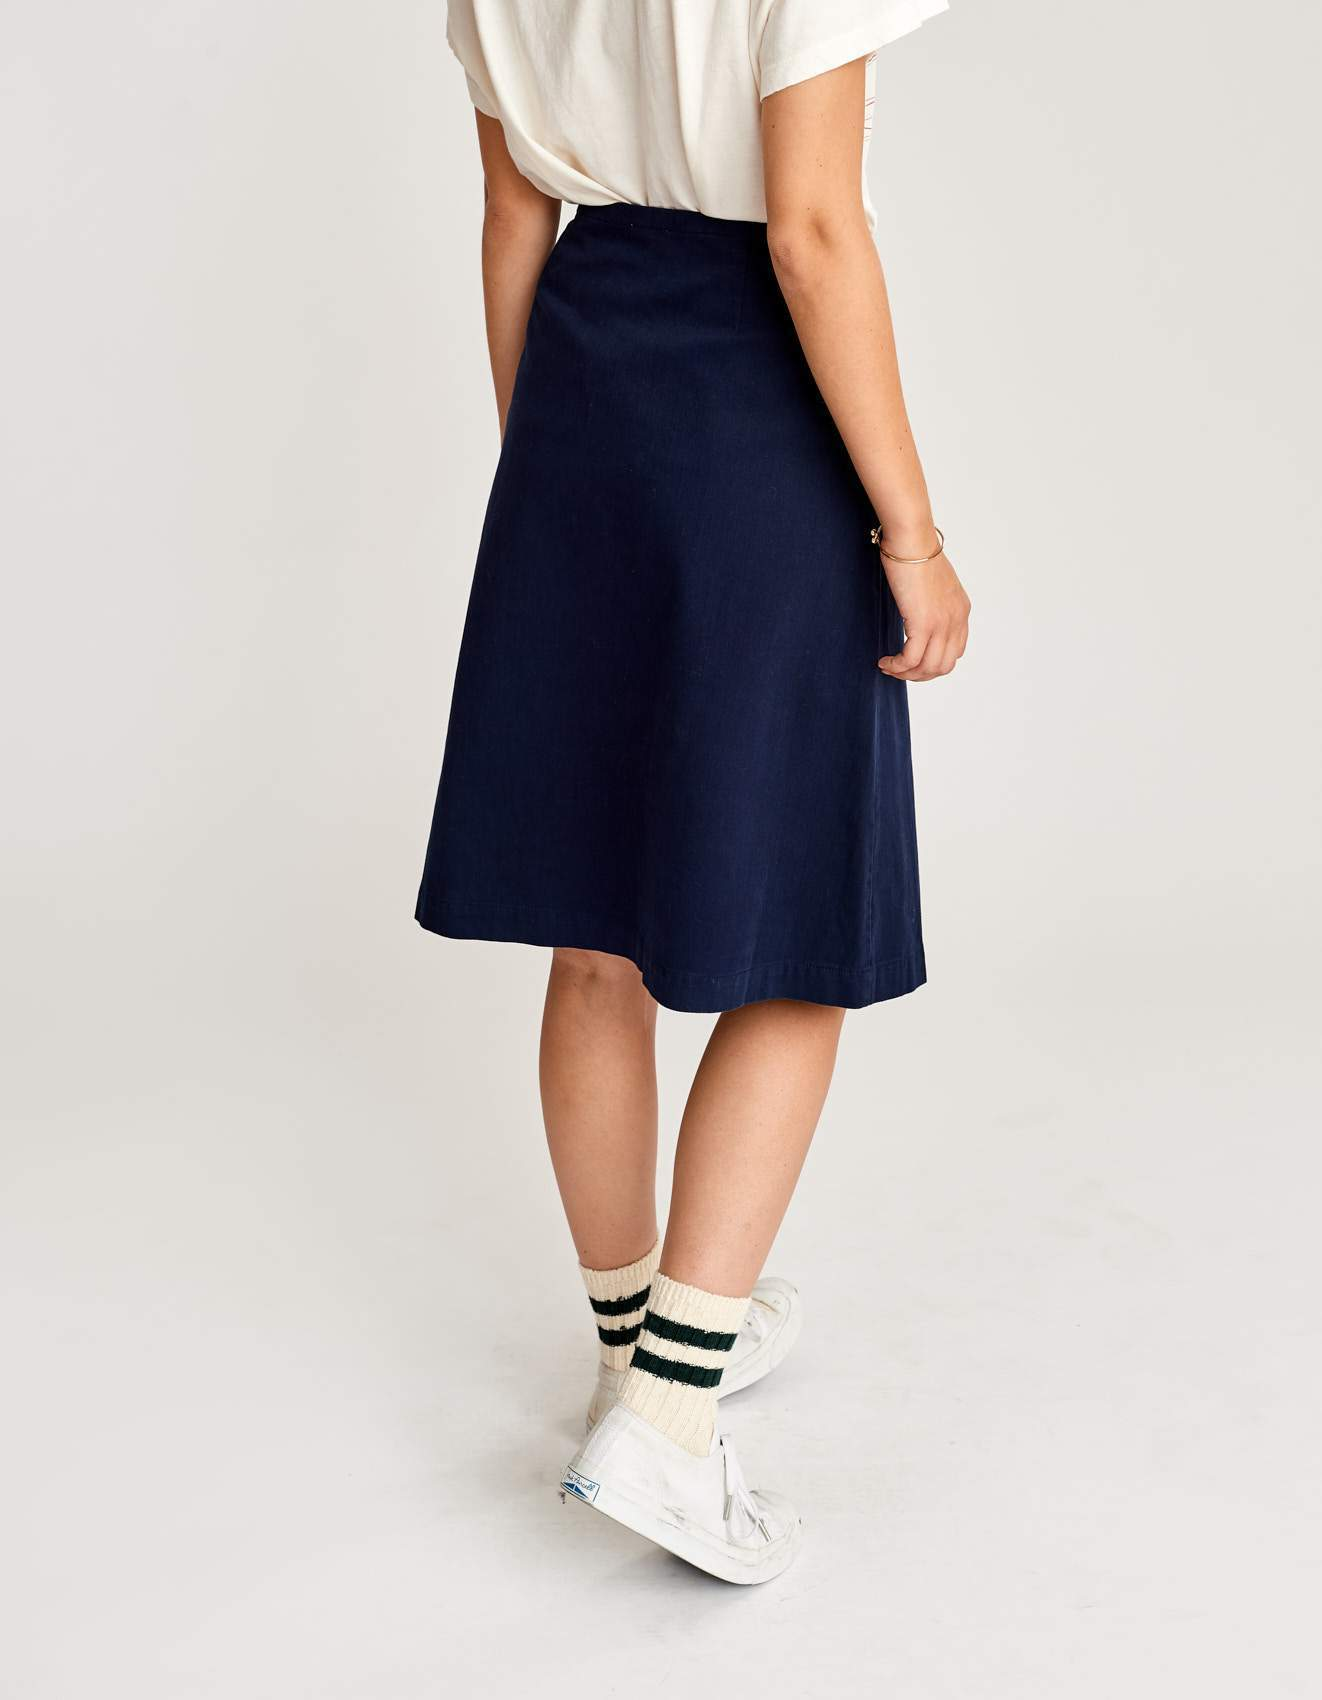 Bellerose A line blue skirt for women